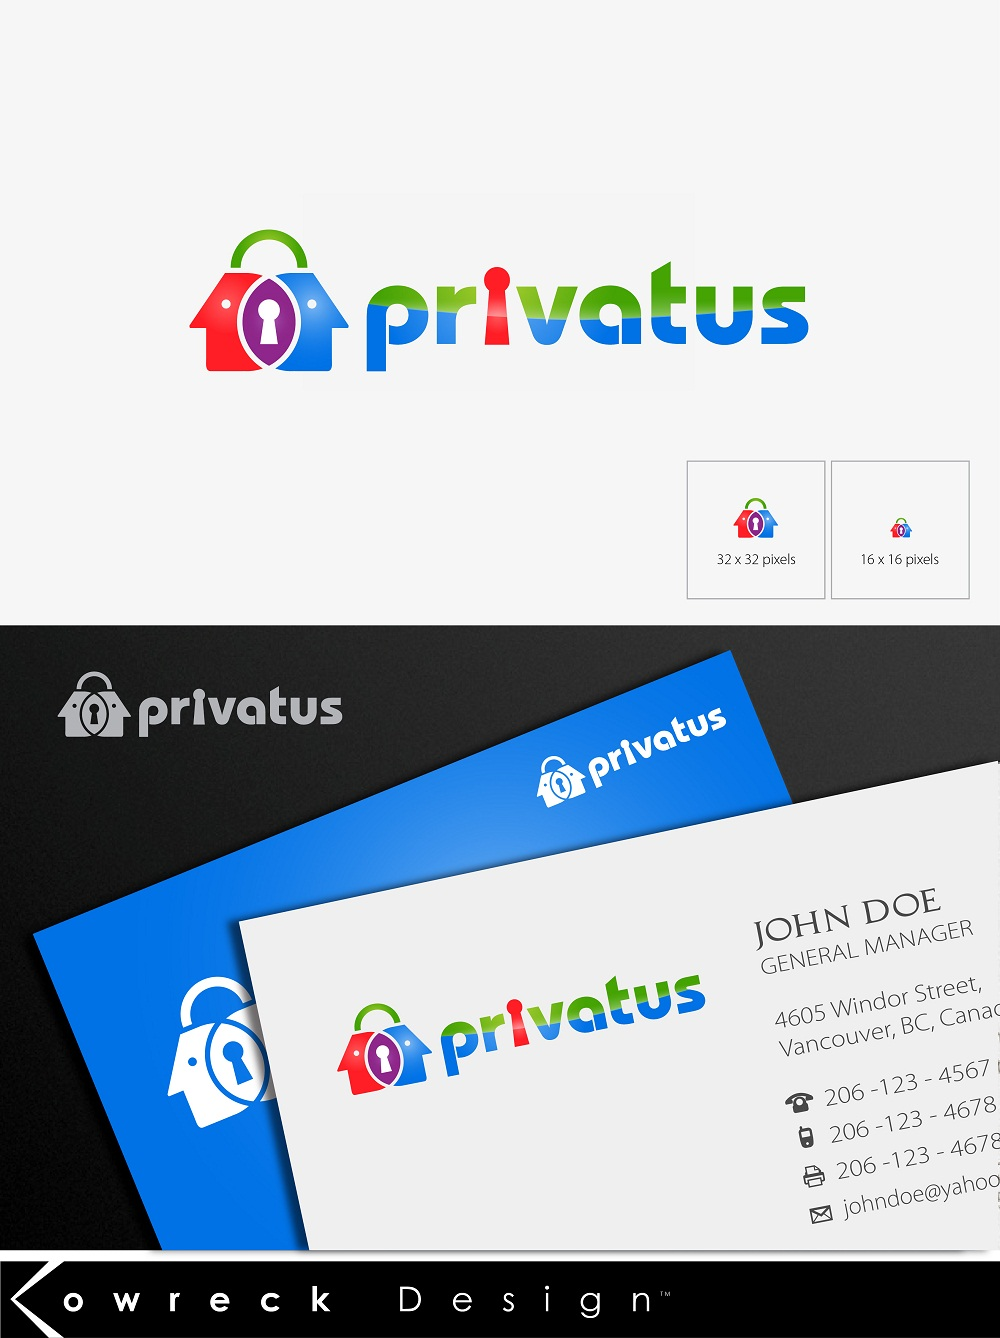 Logo Design by kowreck - Entry No. 281 in the Logo Design Contest New Logo Design for privatus.